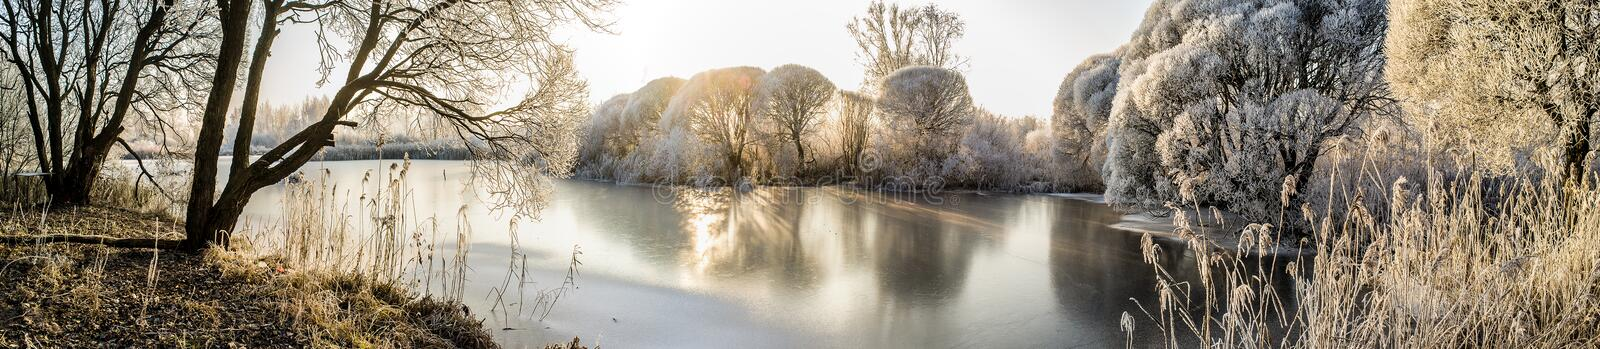 Panorama of the frozen lake and snow-covered trees through which sun rays make their way royalty free stock photo